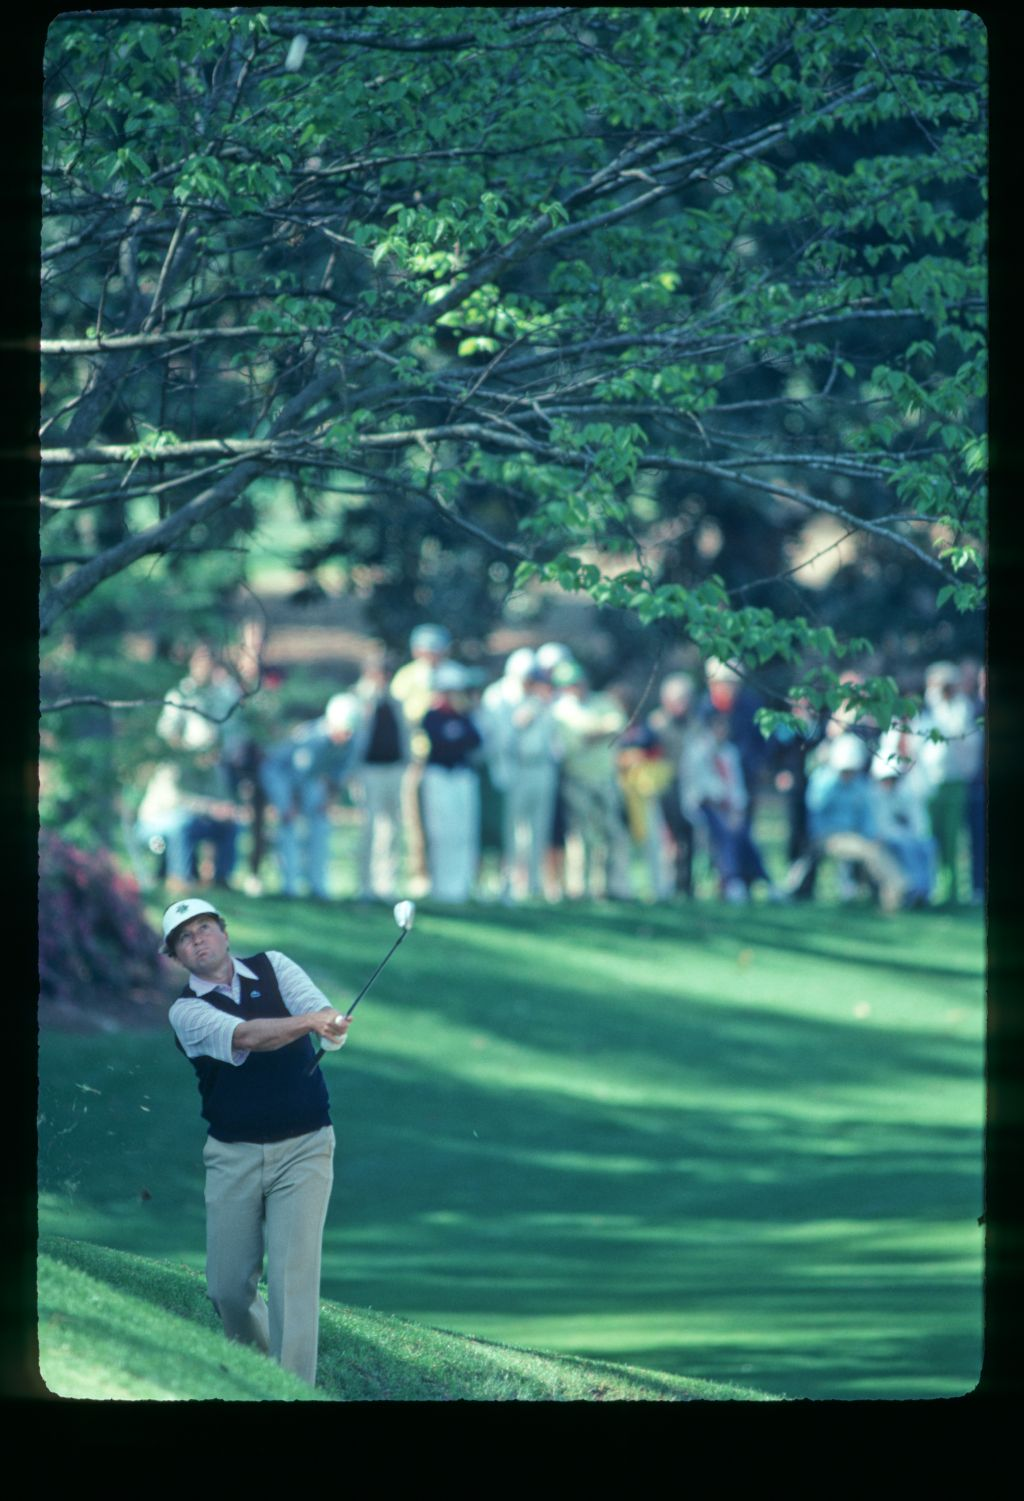 Ray Floyd plays from the sidehill rough at the 1982 Masters Championship